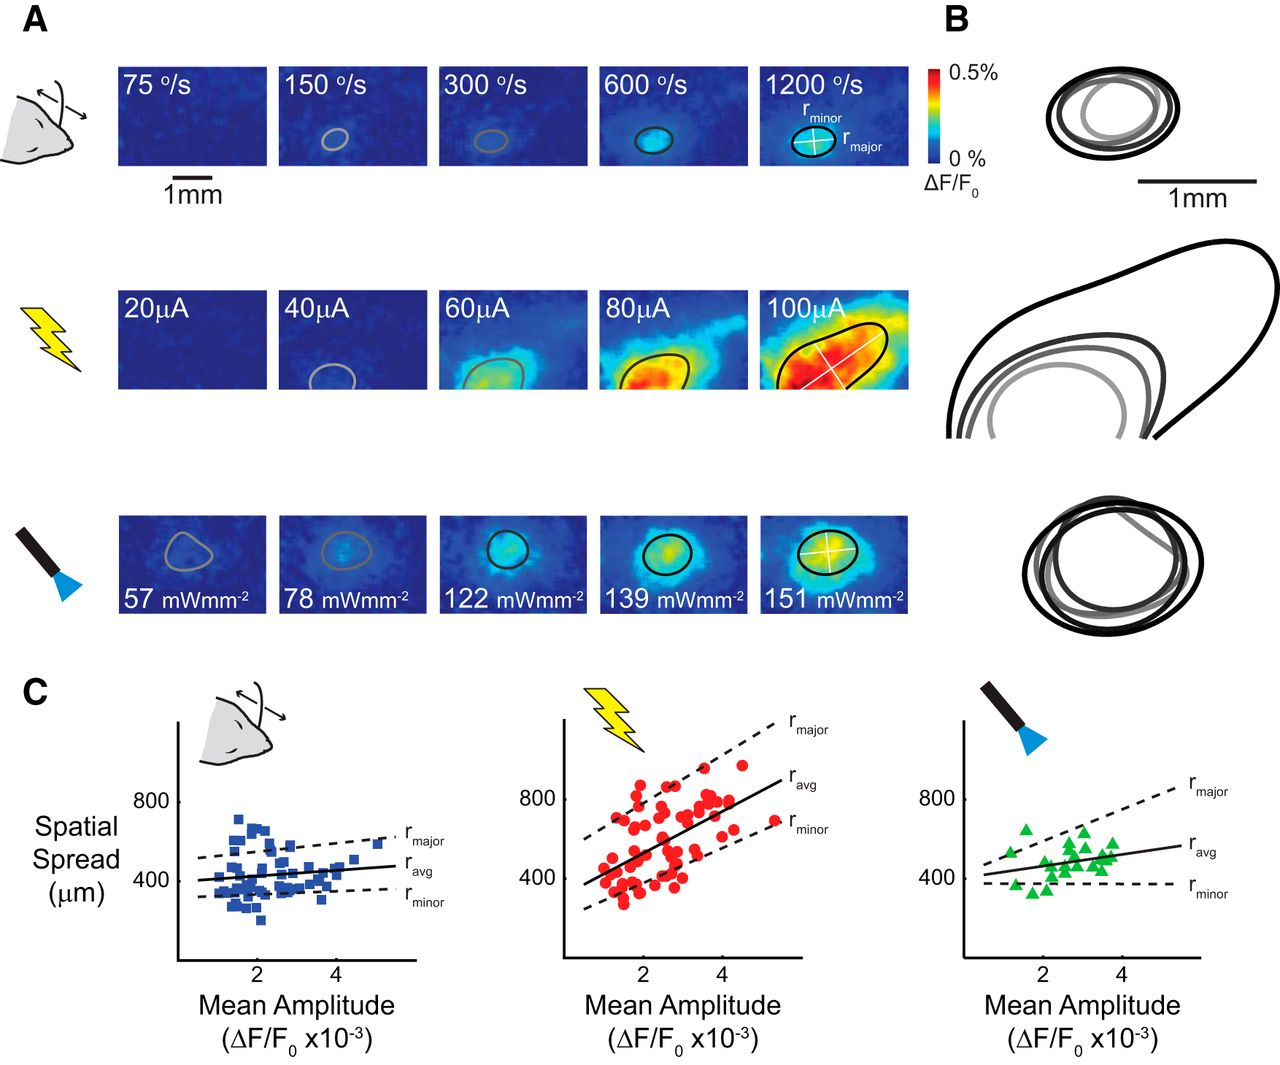 Electrical And Optical Activation Of Mesoscale Neural Circuits With U2014 Lights Neurons Fiber On Wiring Your Home For Optic Download Figure